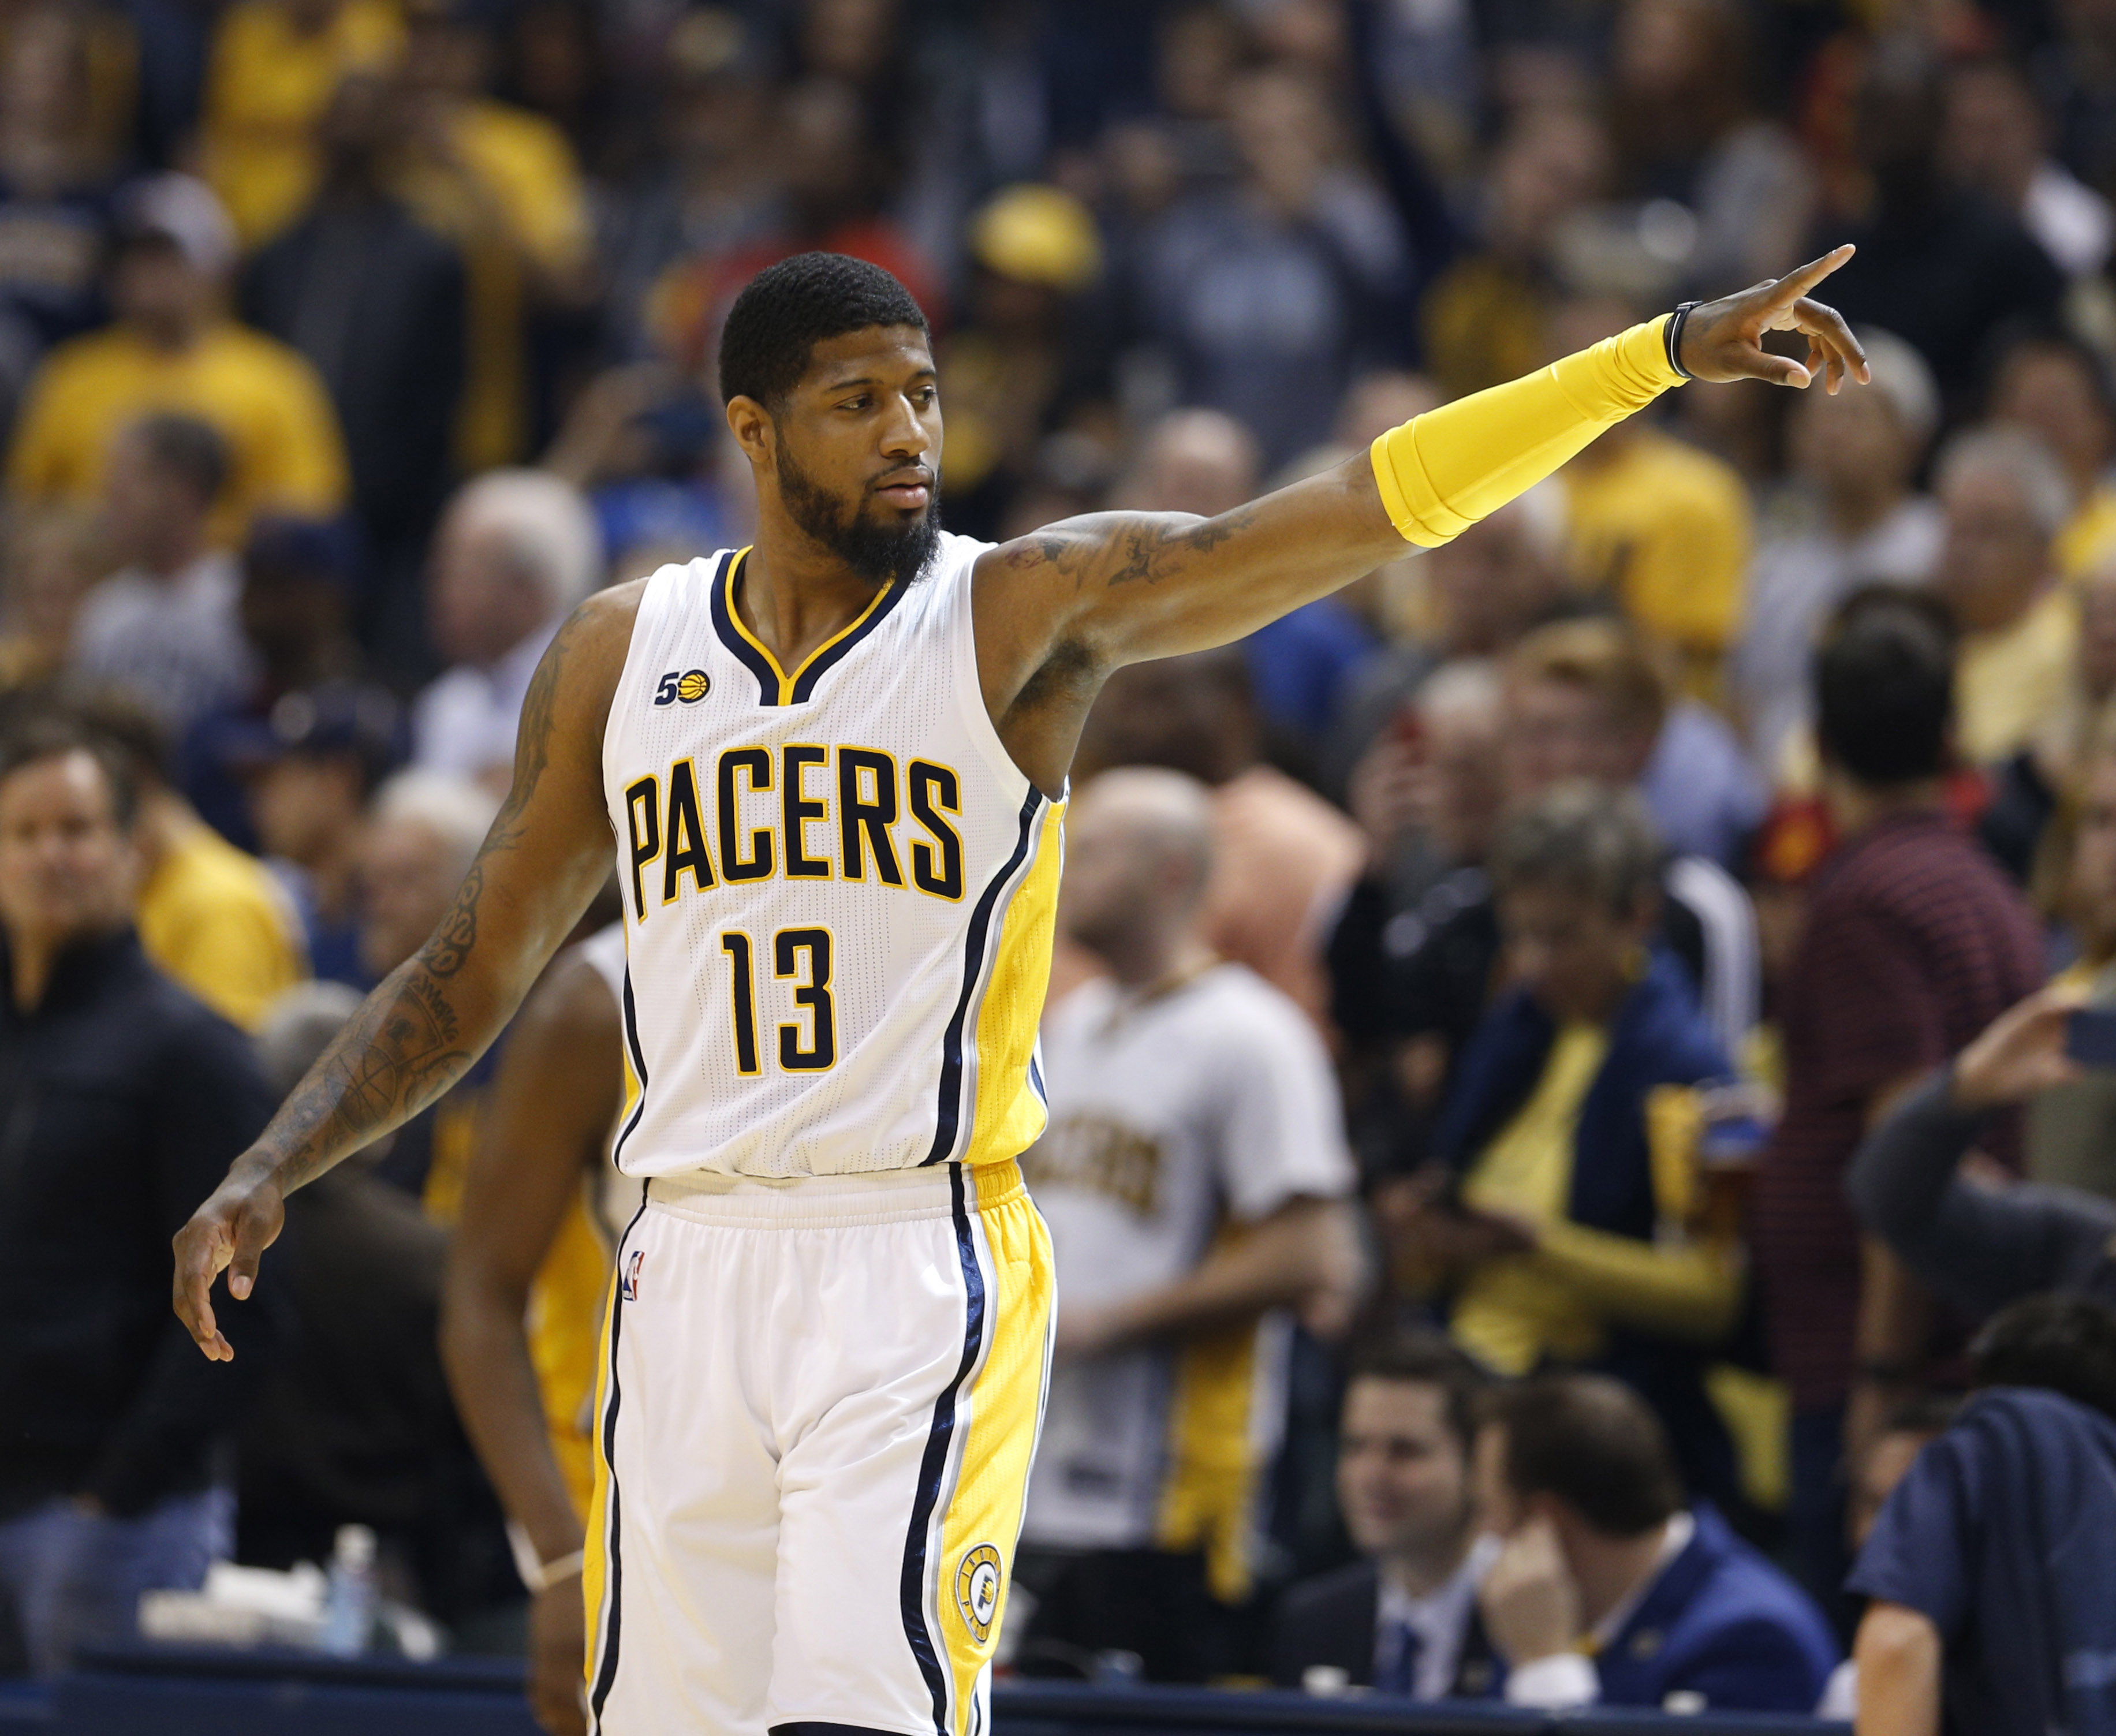 10027688-nba-playoffs-cleveland-cavaliers-at-indiana-pacers